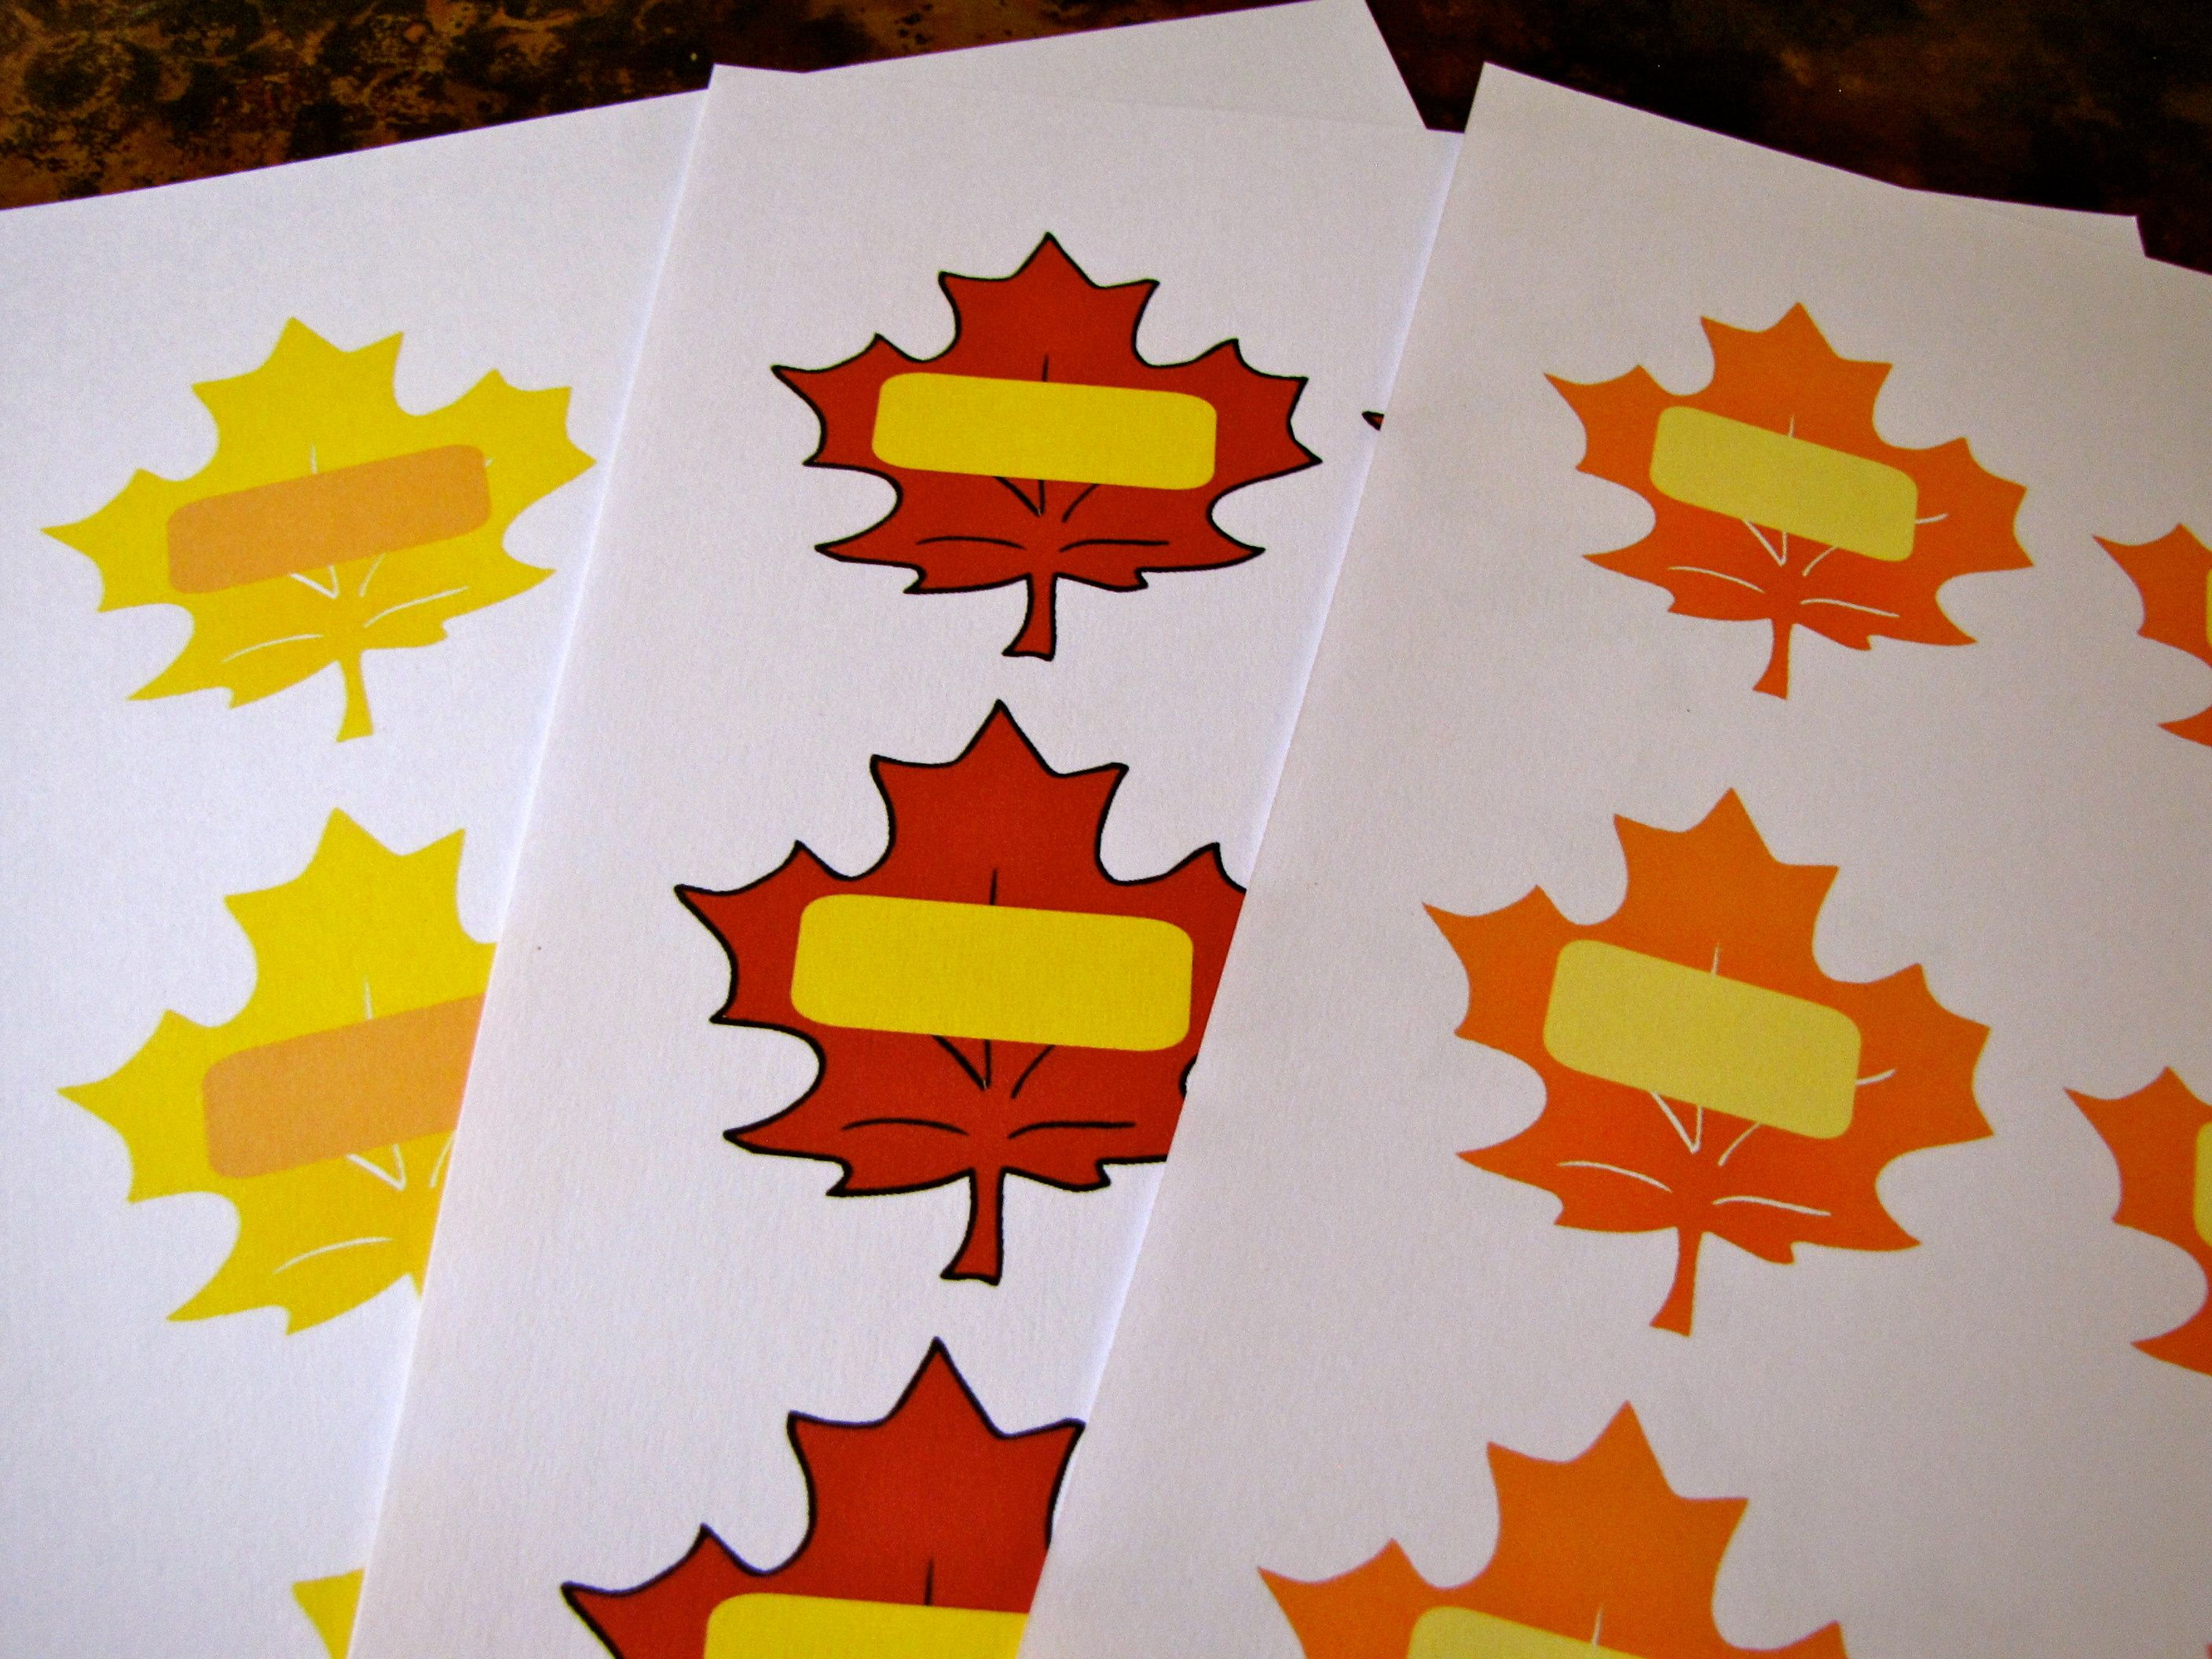 Autumn Leaf Printables Free File To Download Ideas For Using Them With Preschoolers